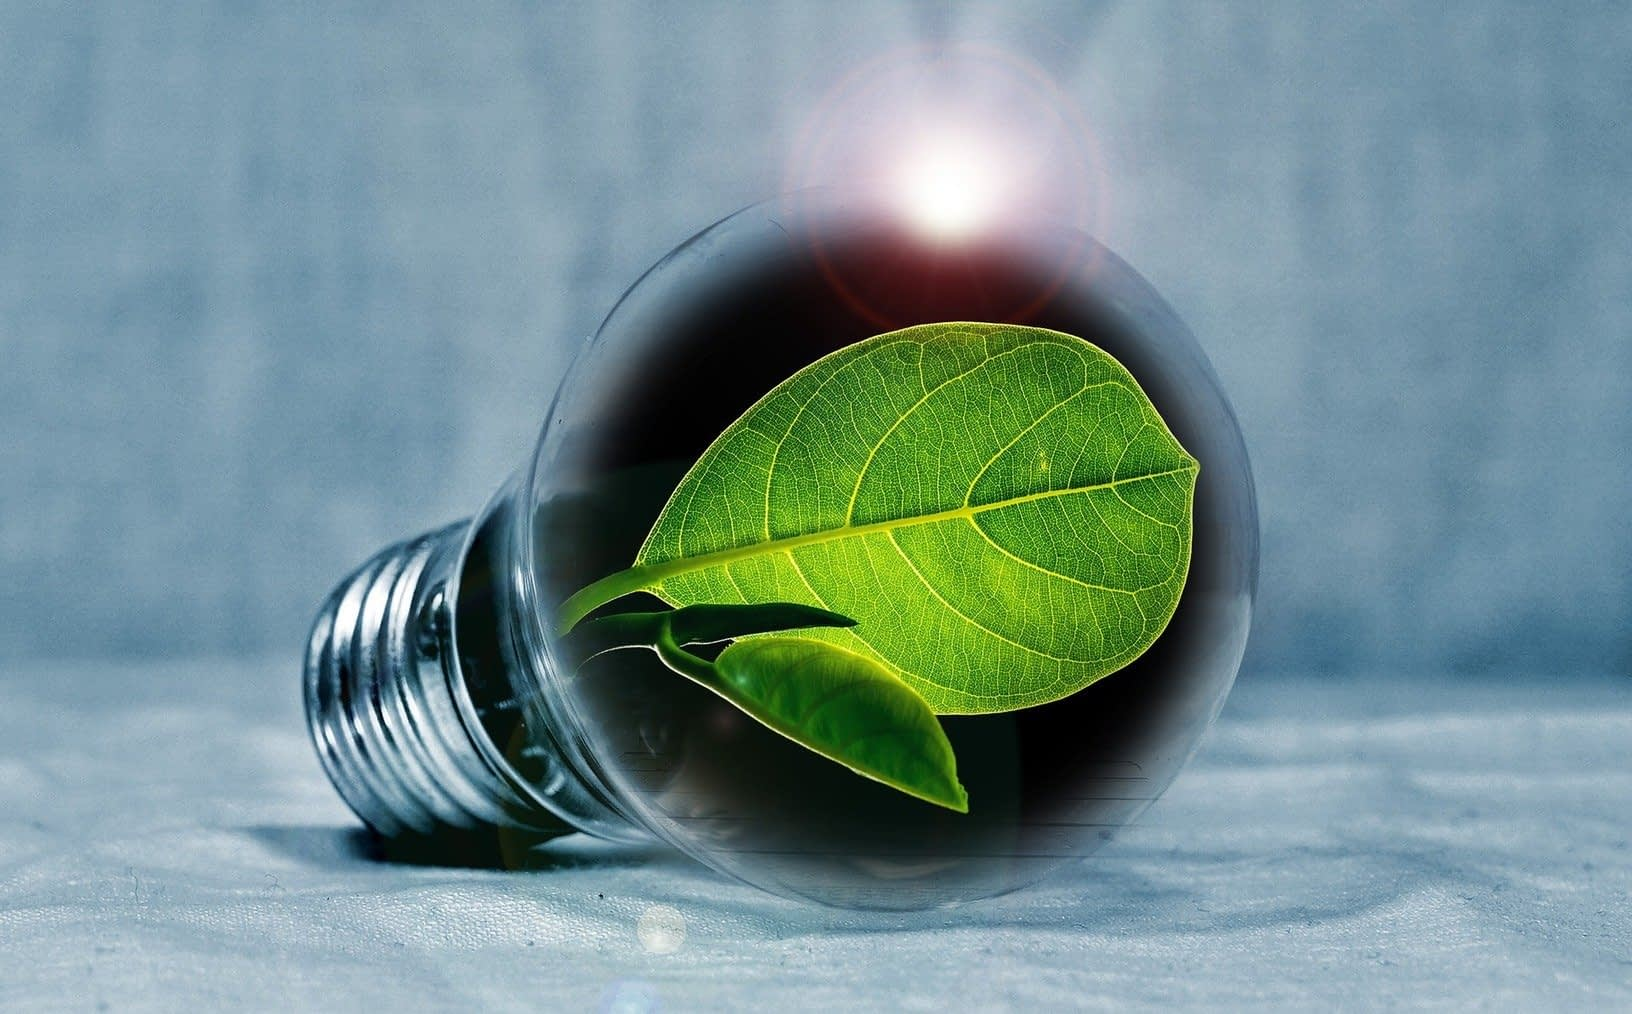 , Techstars and The Nature Conservancy are accepting applications for Sustainability Accelerator, TheCircularEconomy.com